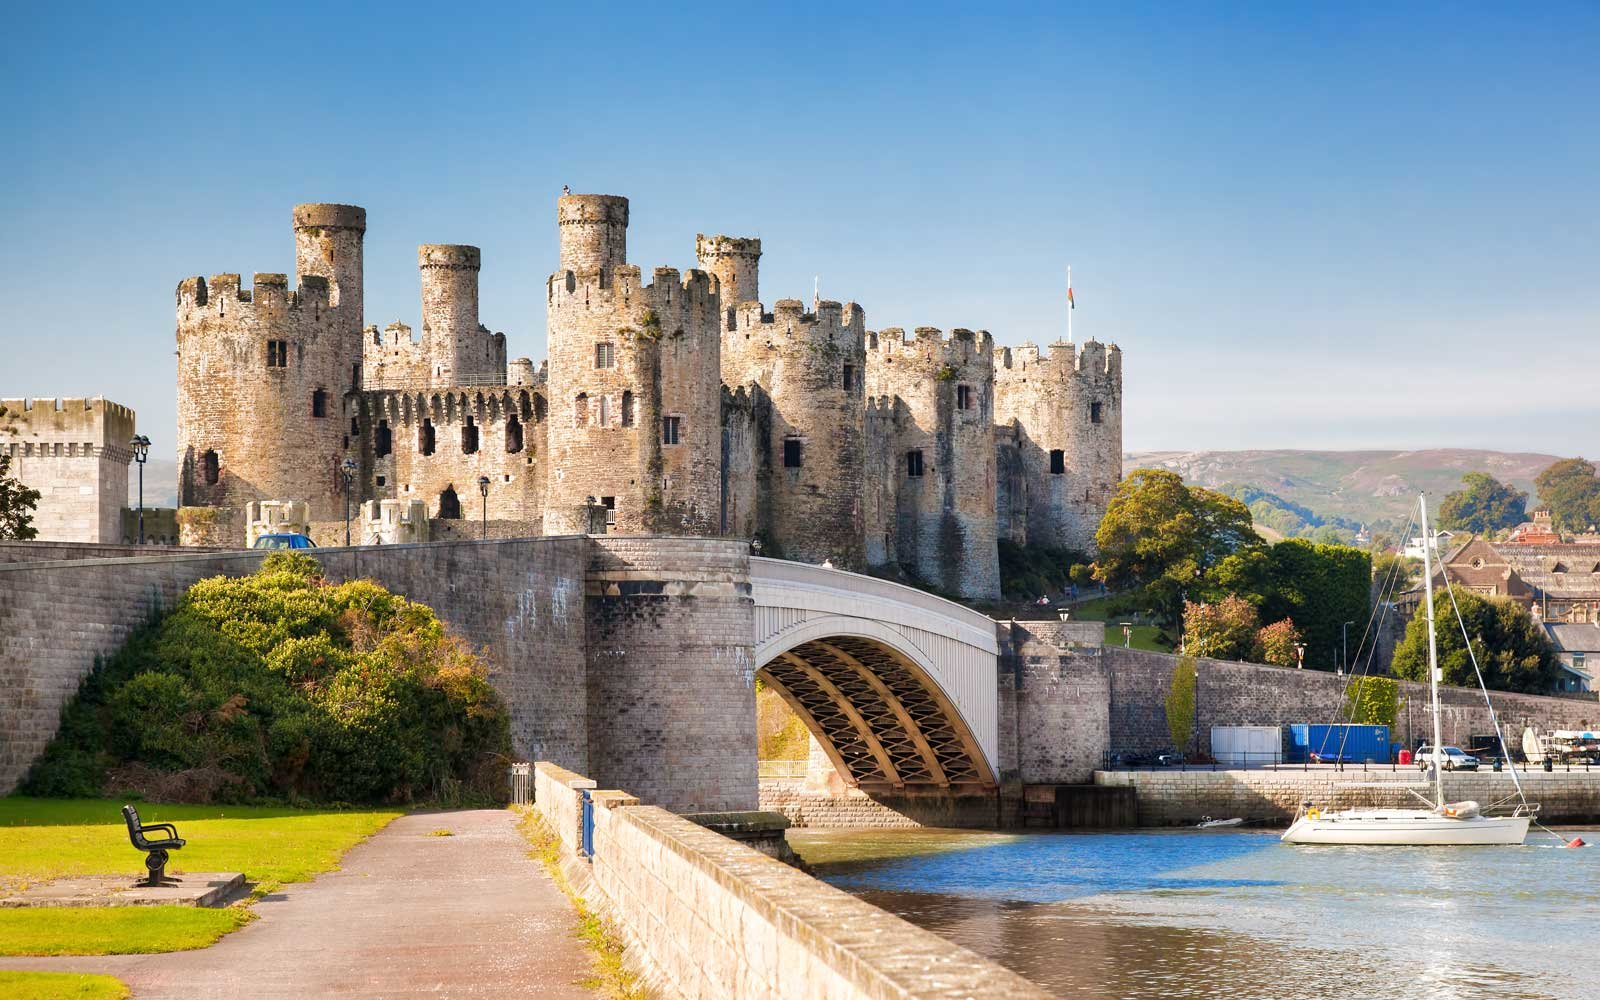 Conwy Castle in Wales, United Kingdom